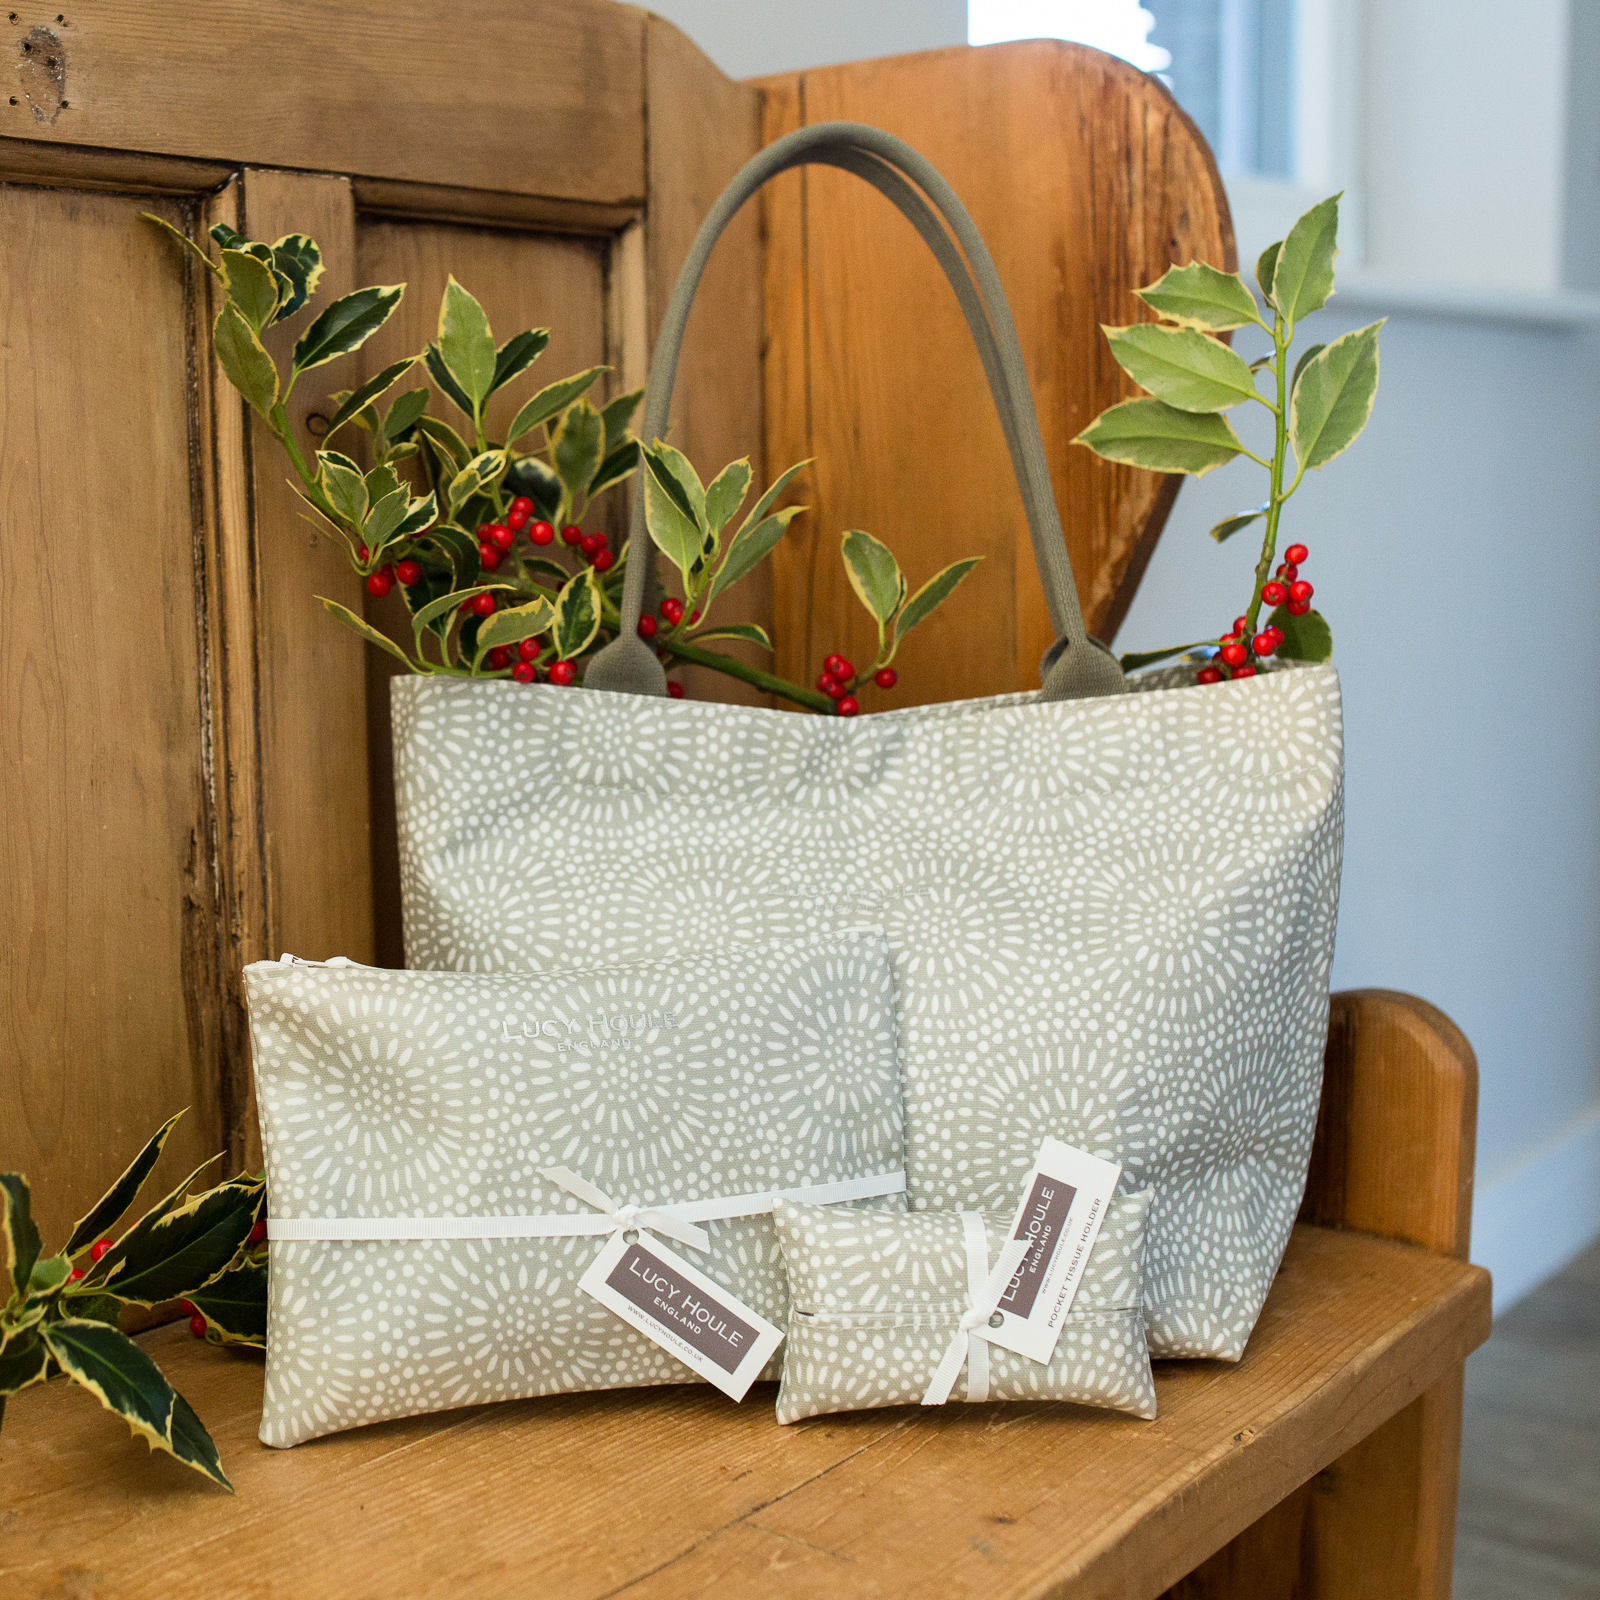 Stone Sunburst Tote Bag Gift Set